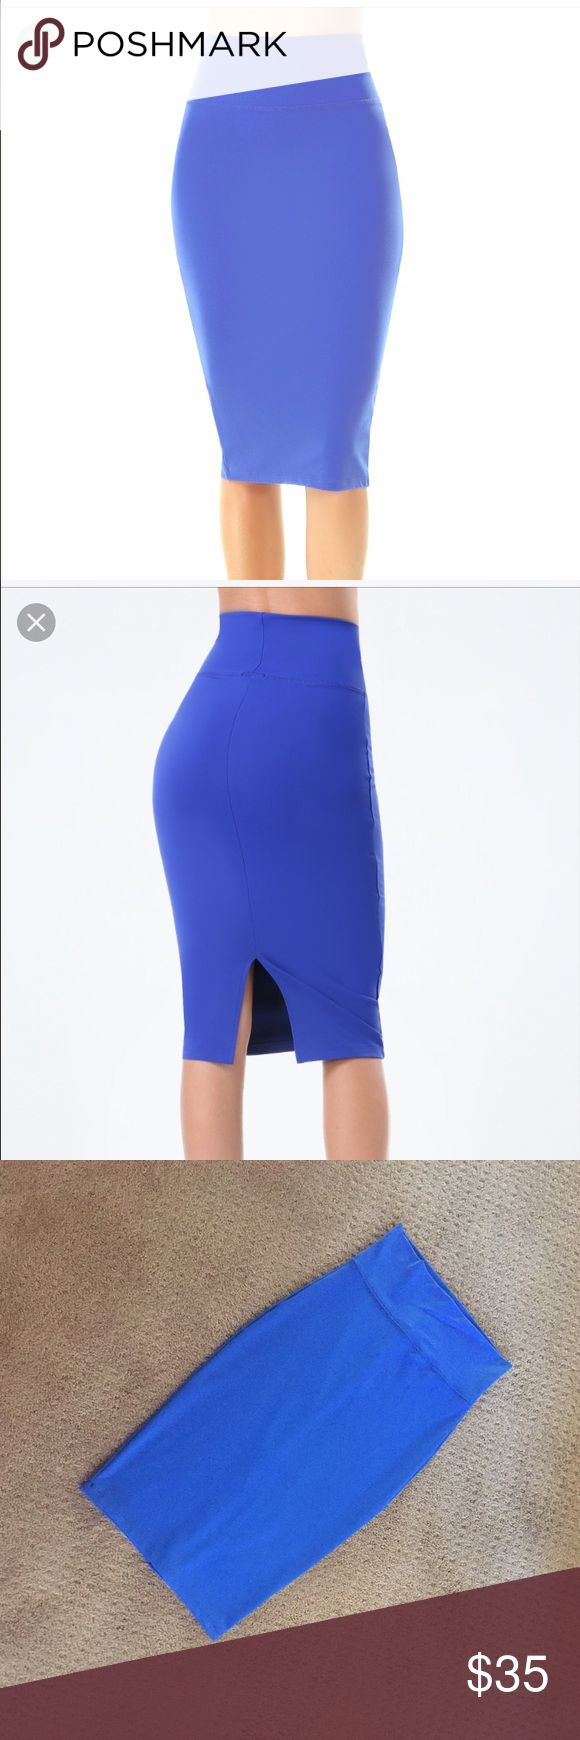 New Royal Blue BEBE Bodycon Midi Skirt XS New w tags. Bebe Midi skirt. Bodycon w lots of stretch. Meant to be worn high waisted but doesn't have to be. Bright royal blue color. Size XS. Org $69. No trades. Cheaper on ♏️ercari bebe Skirts Midi